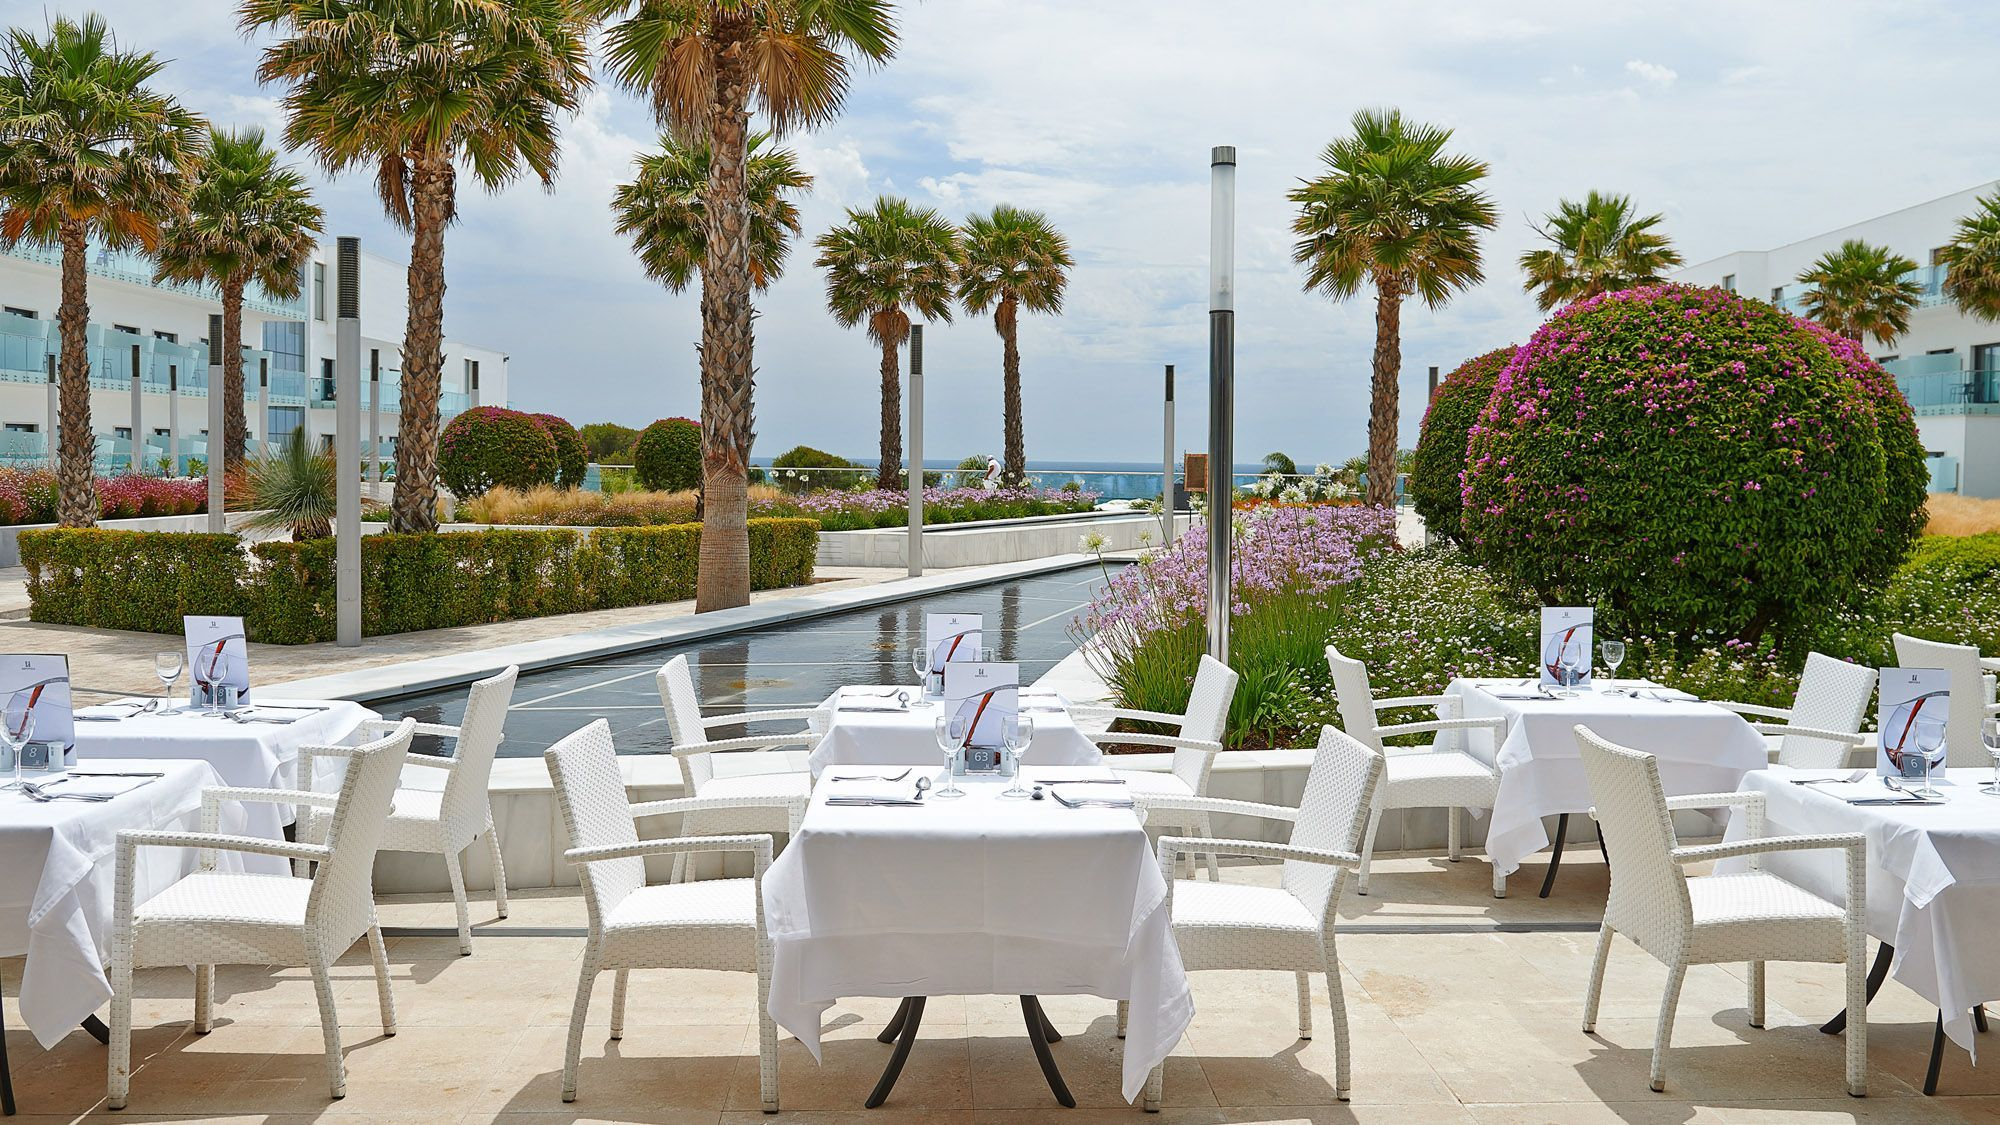 Hipotels gran conil spa photo gallery cadiz for Restaurant with terrace